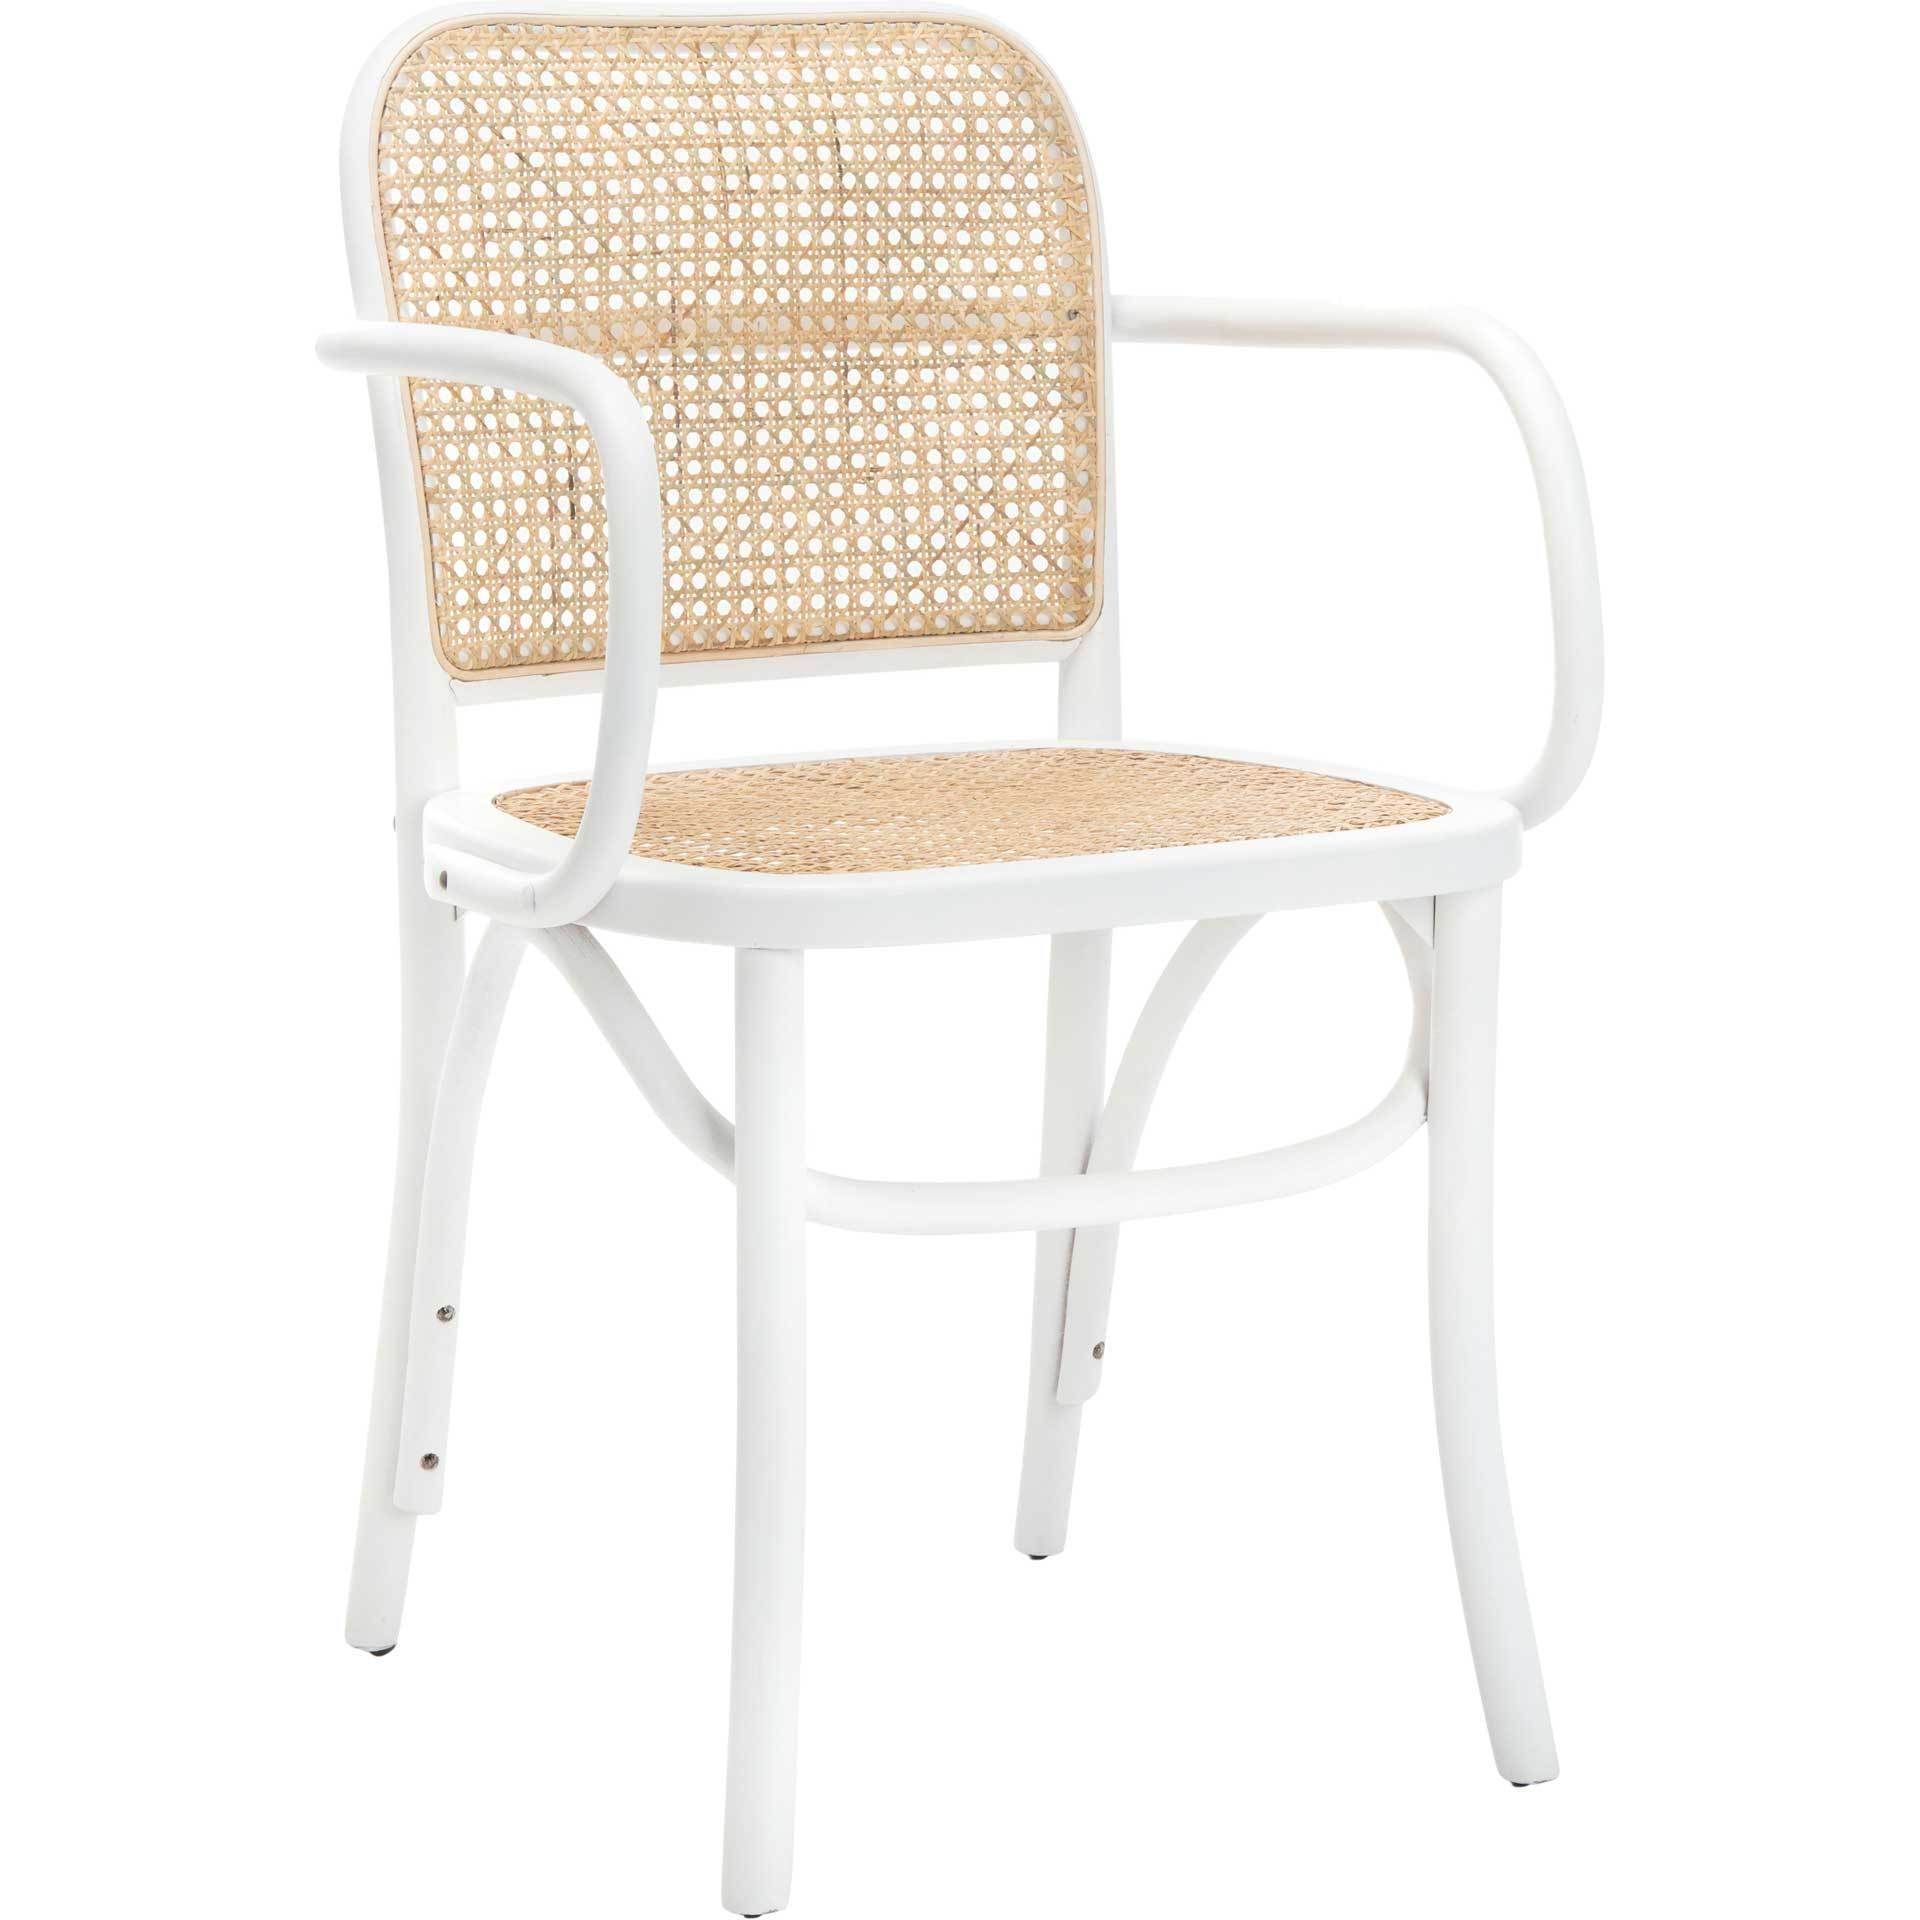 Keanu Cane Dining Chair White Natural Cane Dining Chairs Solid Wood Dining Chairs White Dining Chairs White and natural kitchen chairs